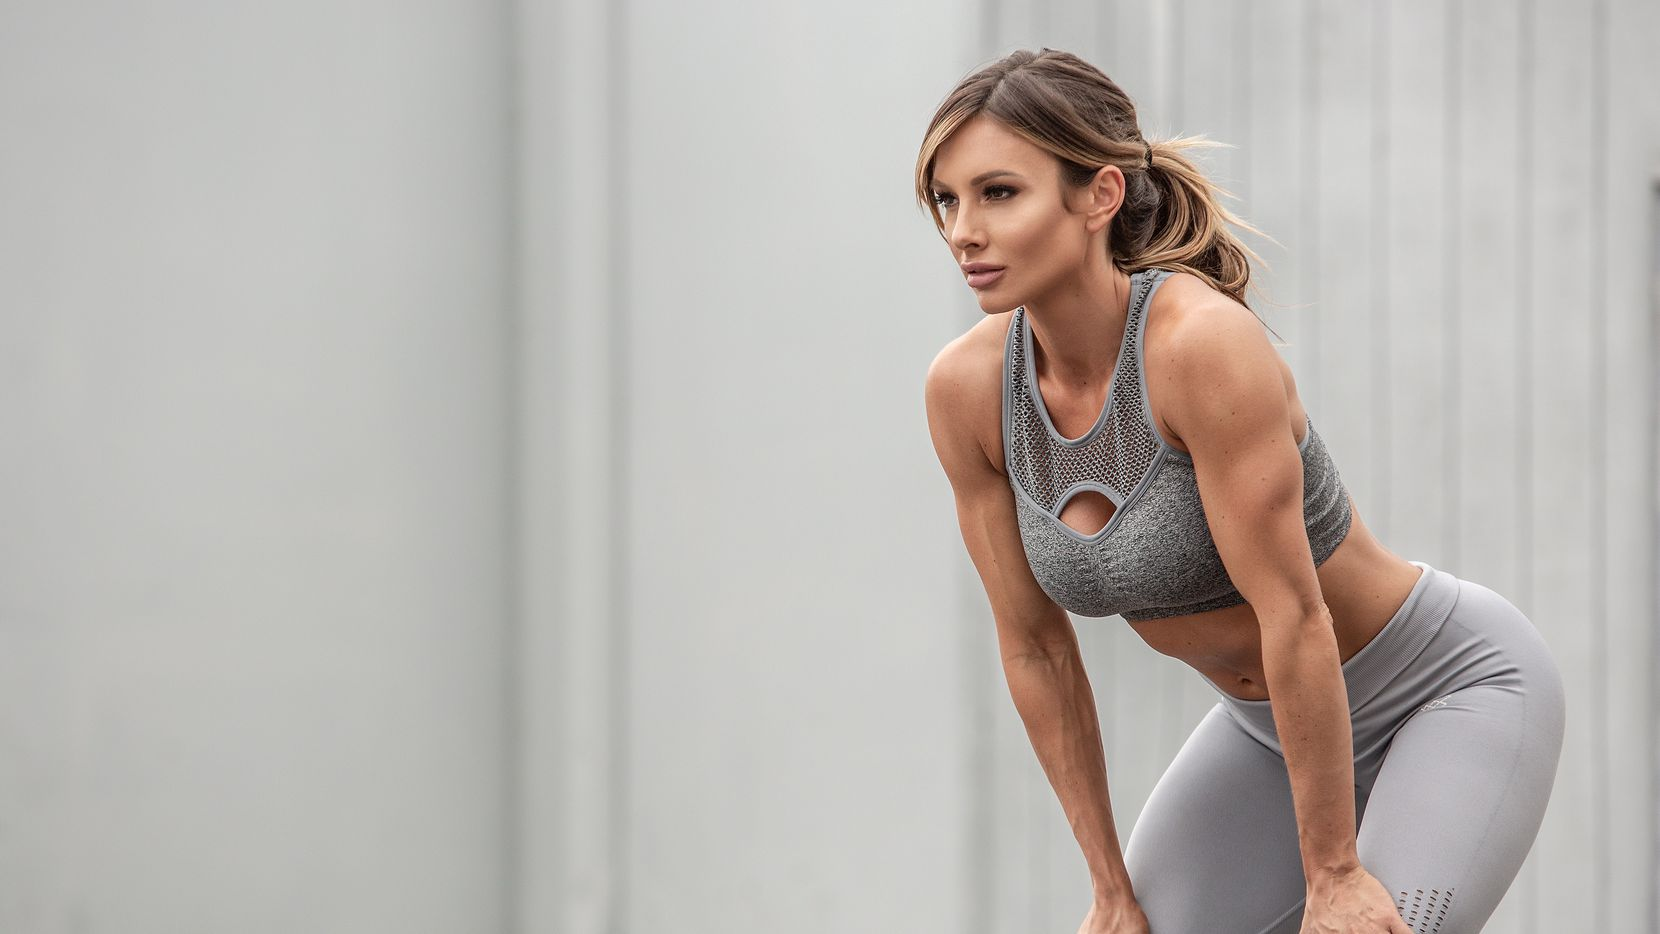 Fitness influencer Paige Hathaway poses for a publicity photo.